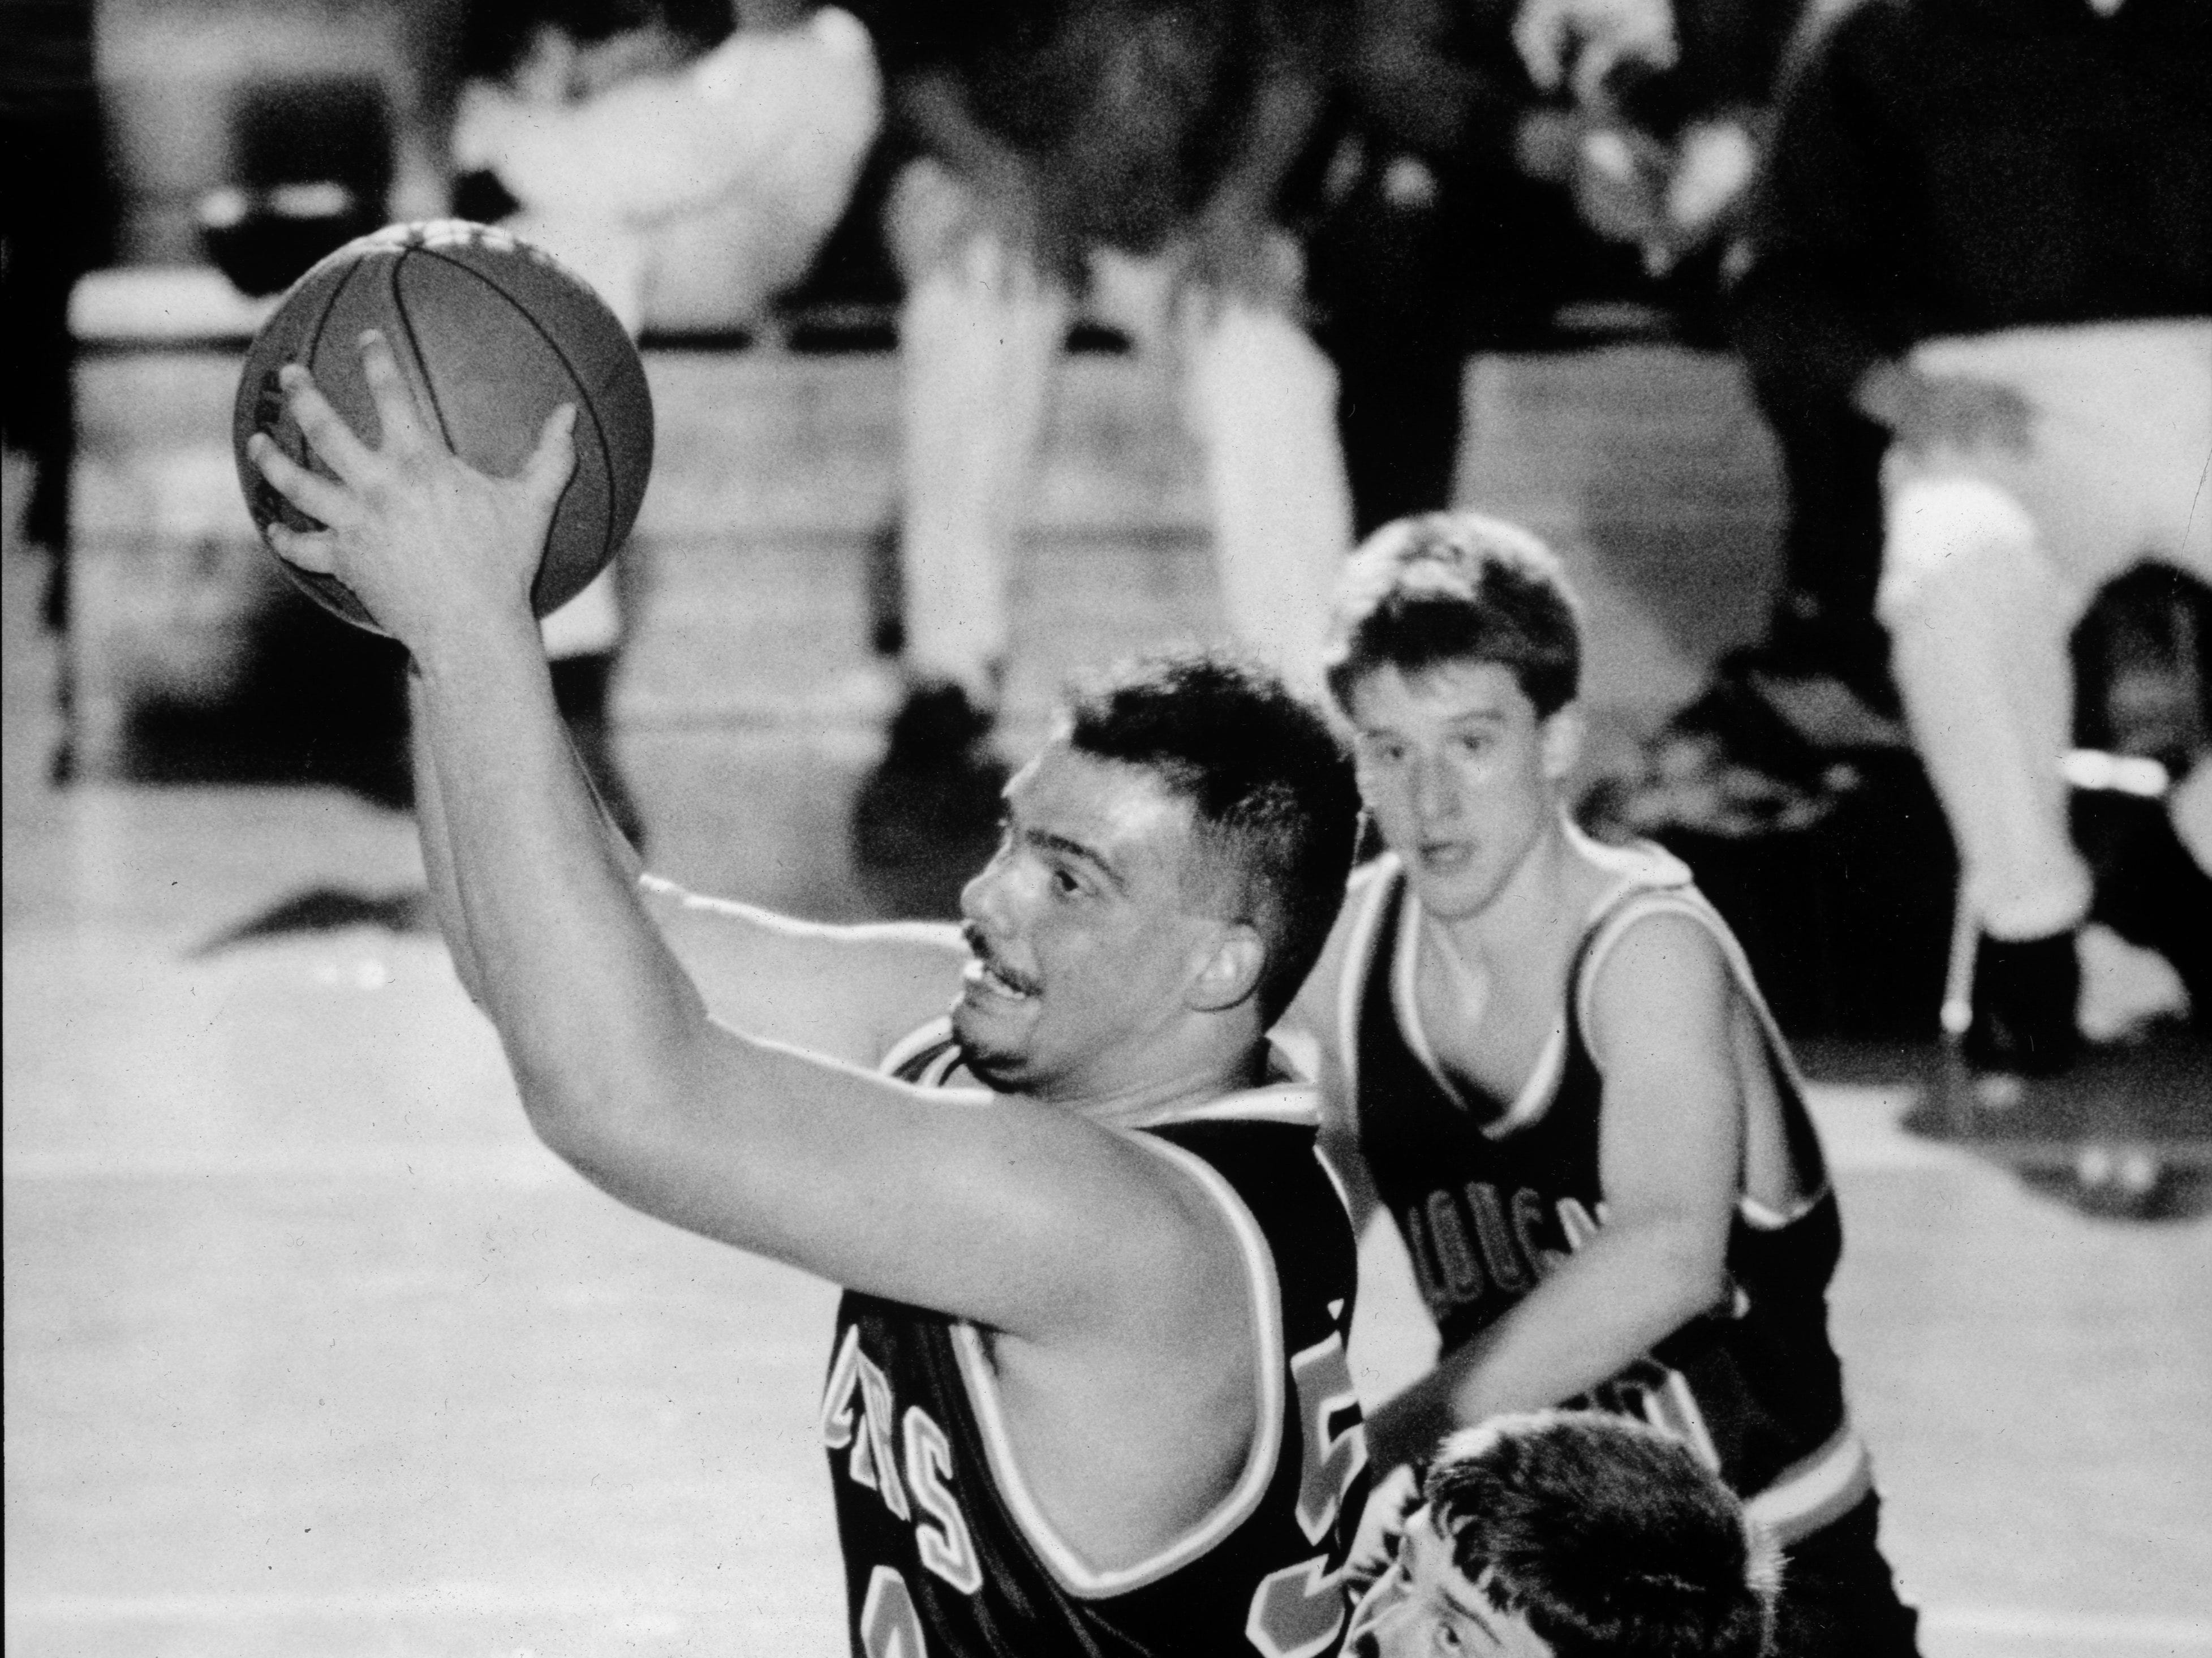 Campbell County High School's Bubba Miller comes down with the rebound during action against Lenoir City on March 3, 1992.